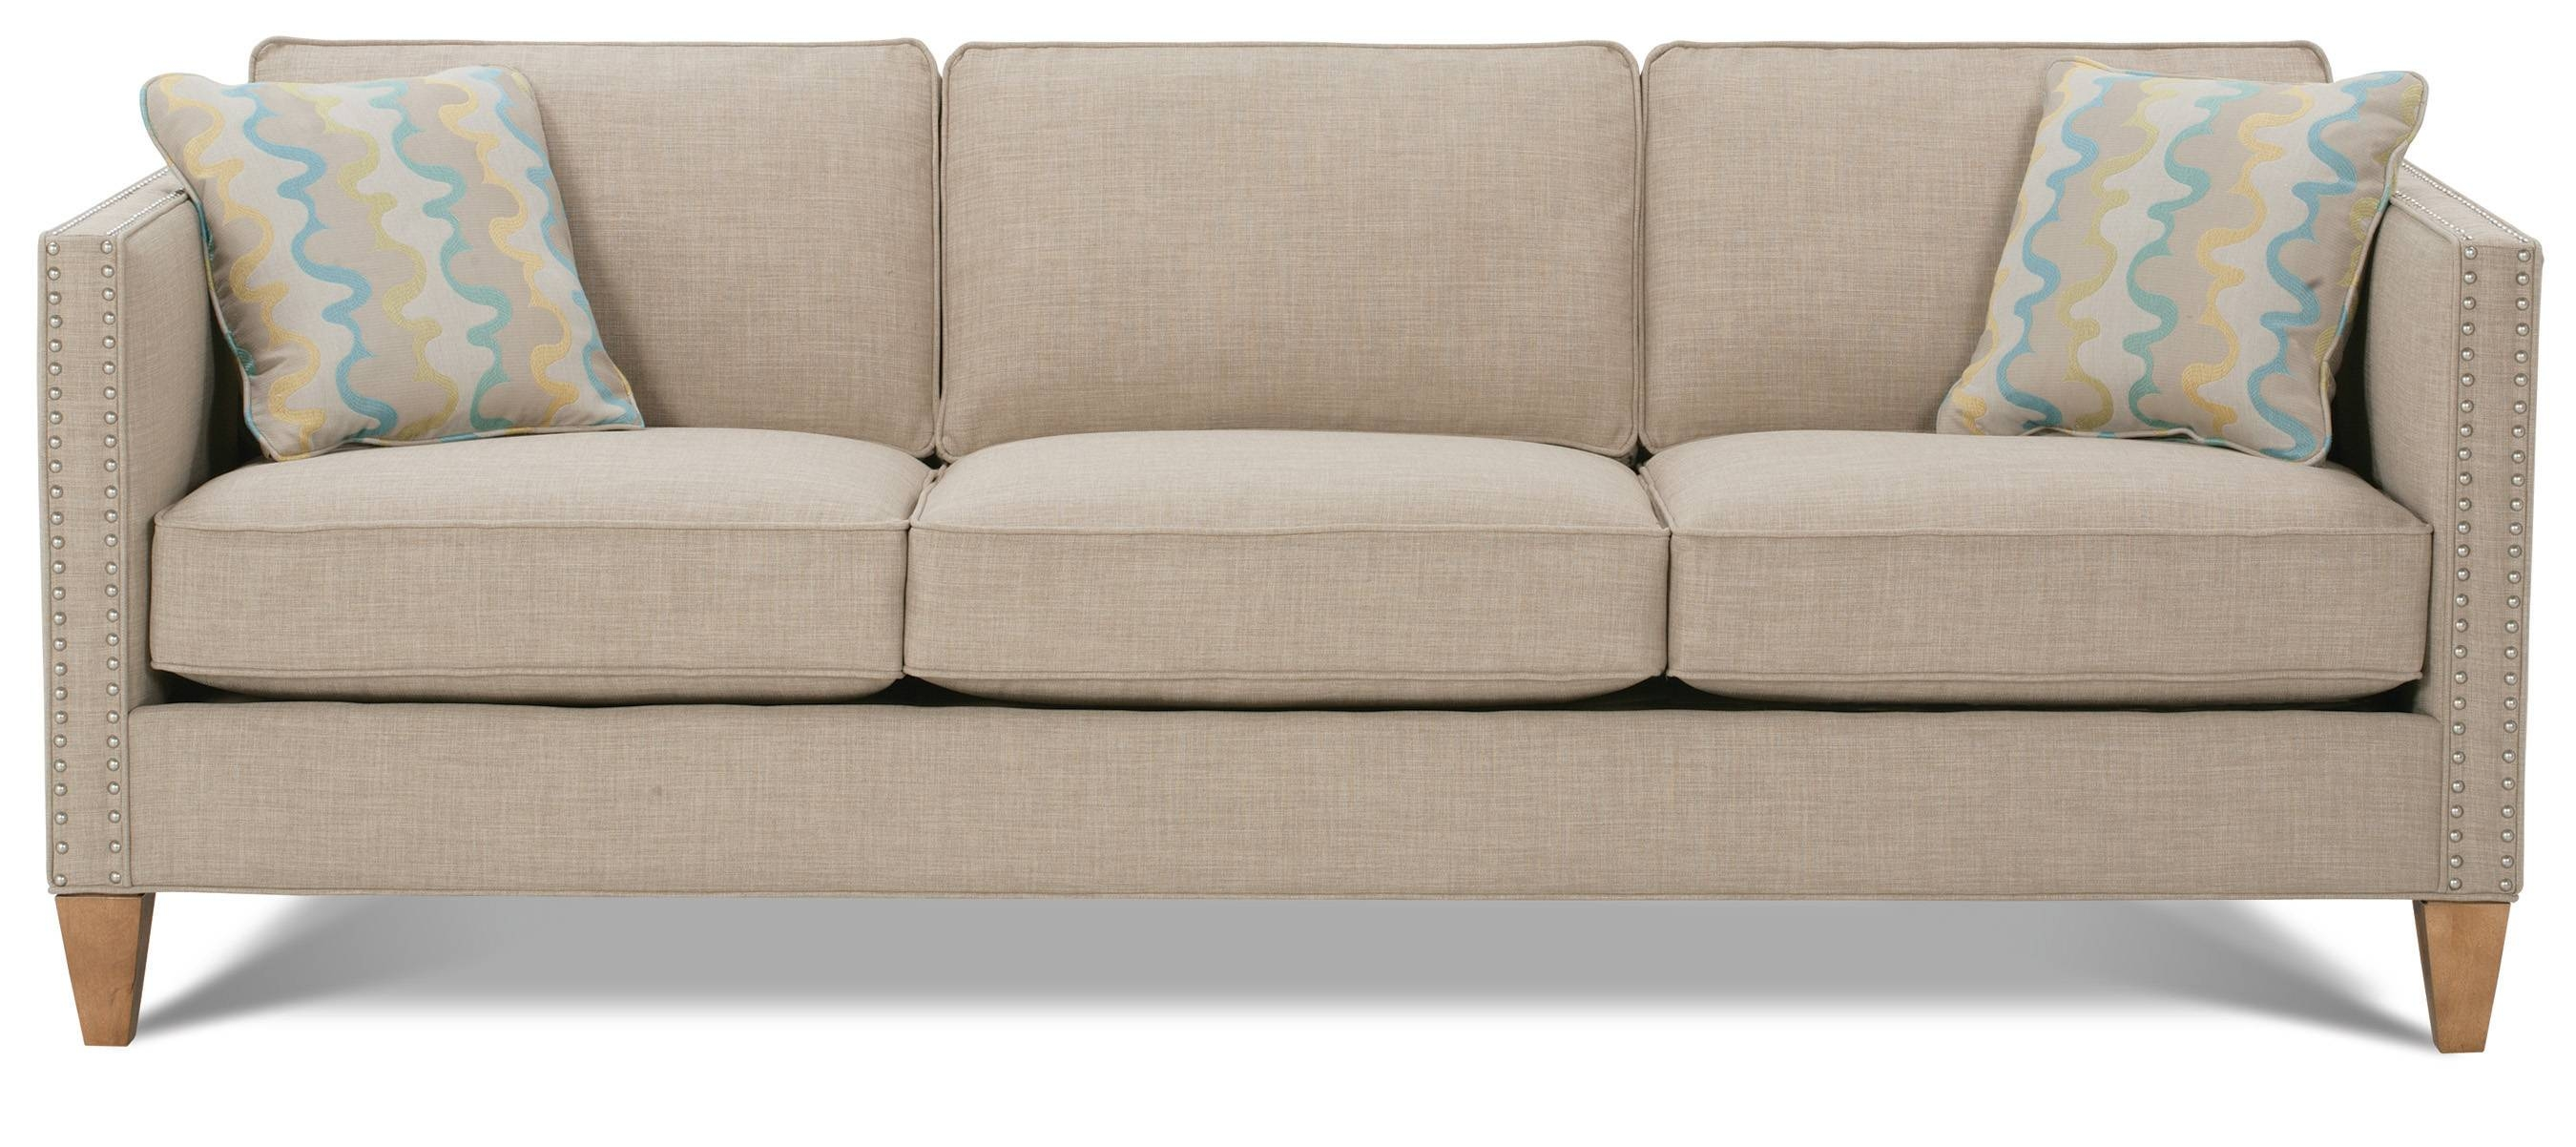 Sofas Center : Sofa Covers Three Seaterthree Seater Uk Price In pertaining to 3 Seater Sofas For Sale (Image 21 of 30)